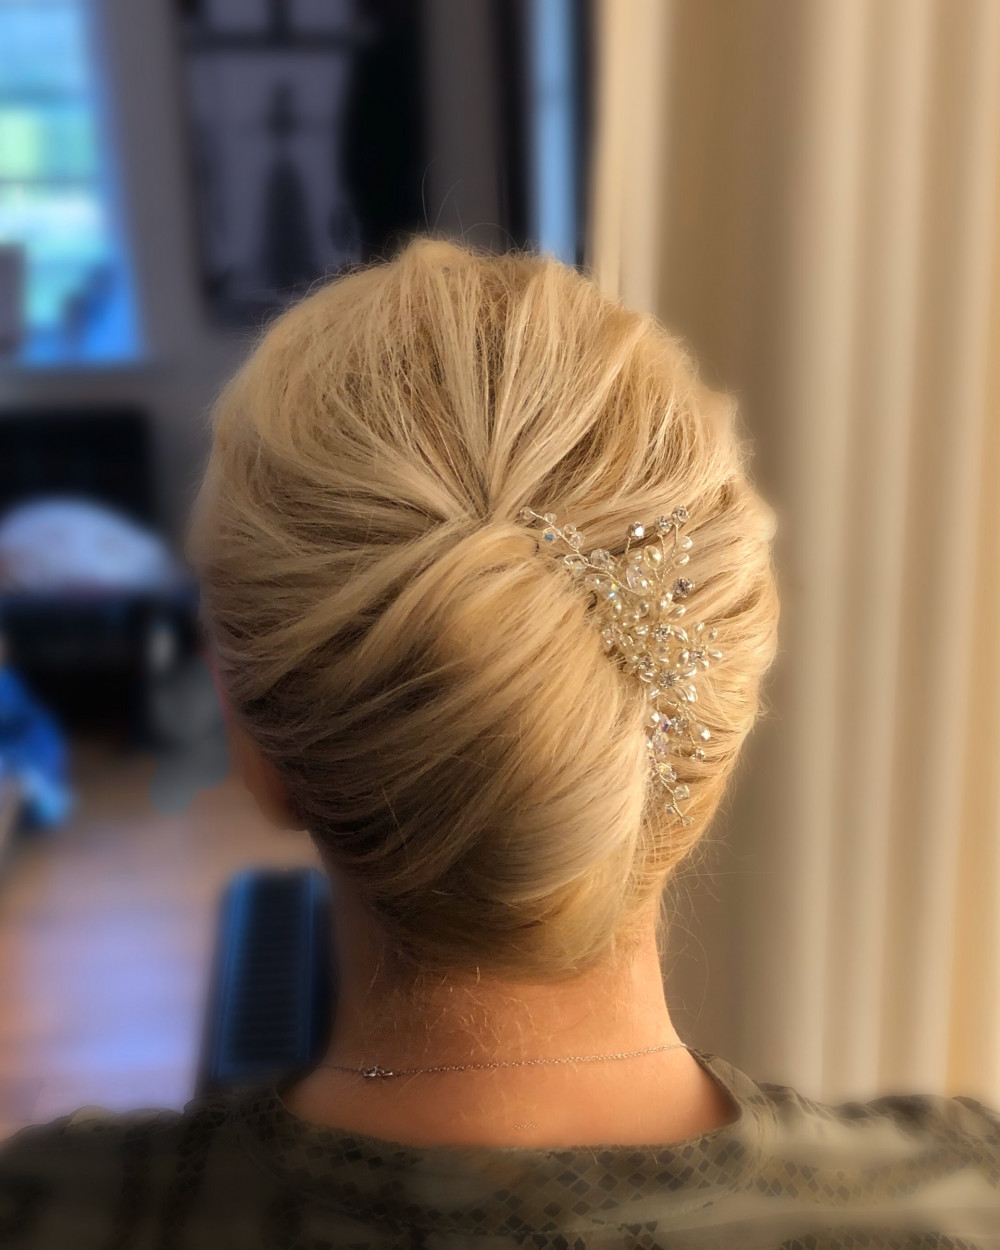 Classic French Pleat (Diamond Team) - Make Me Bridal Artist: CJ Beauty & Co. #classic #vintage #motherofthebride #frenchpleat #modernfrenchpleat #motherofthegroom #simplehairup #blondehair #wearingahat #motherofthebridehair